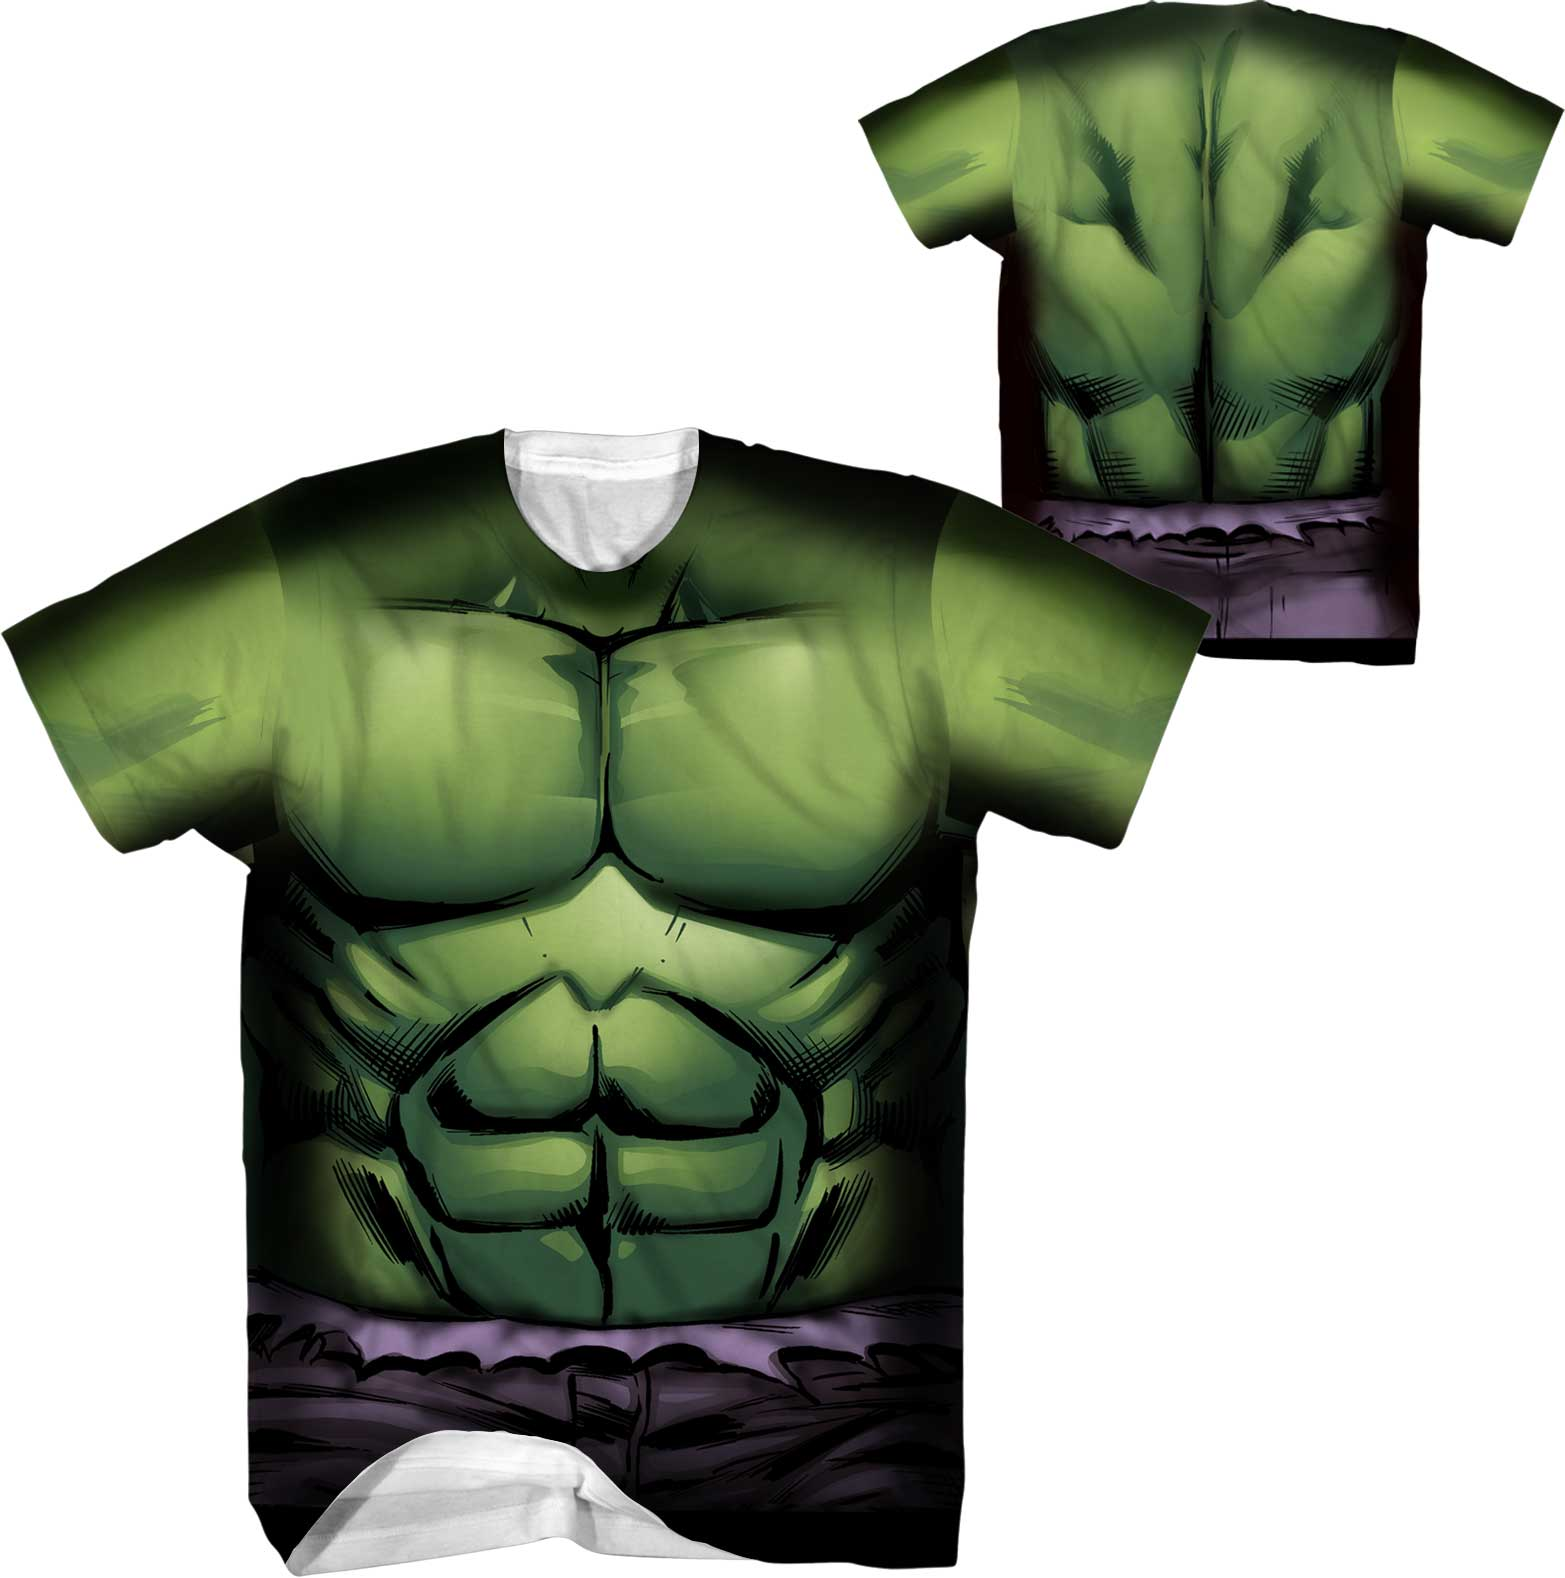 The Incredible Hulk Performance Compression Athletic Costume Adult T-Shirt - Walmart.com  sc 1 st  Walmart & The Incredible Hulk Performance Compression Athletic Costume Adult T ...